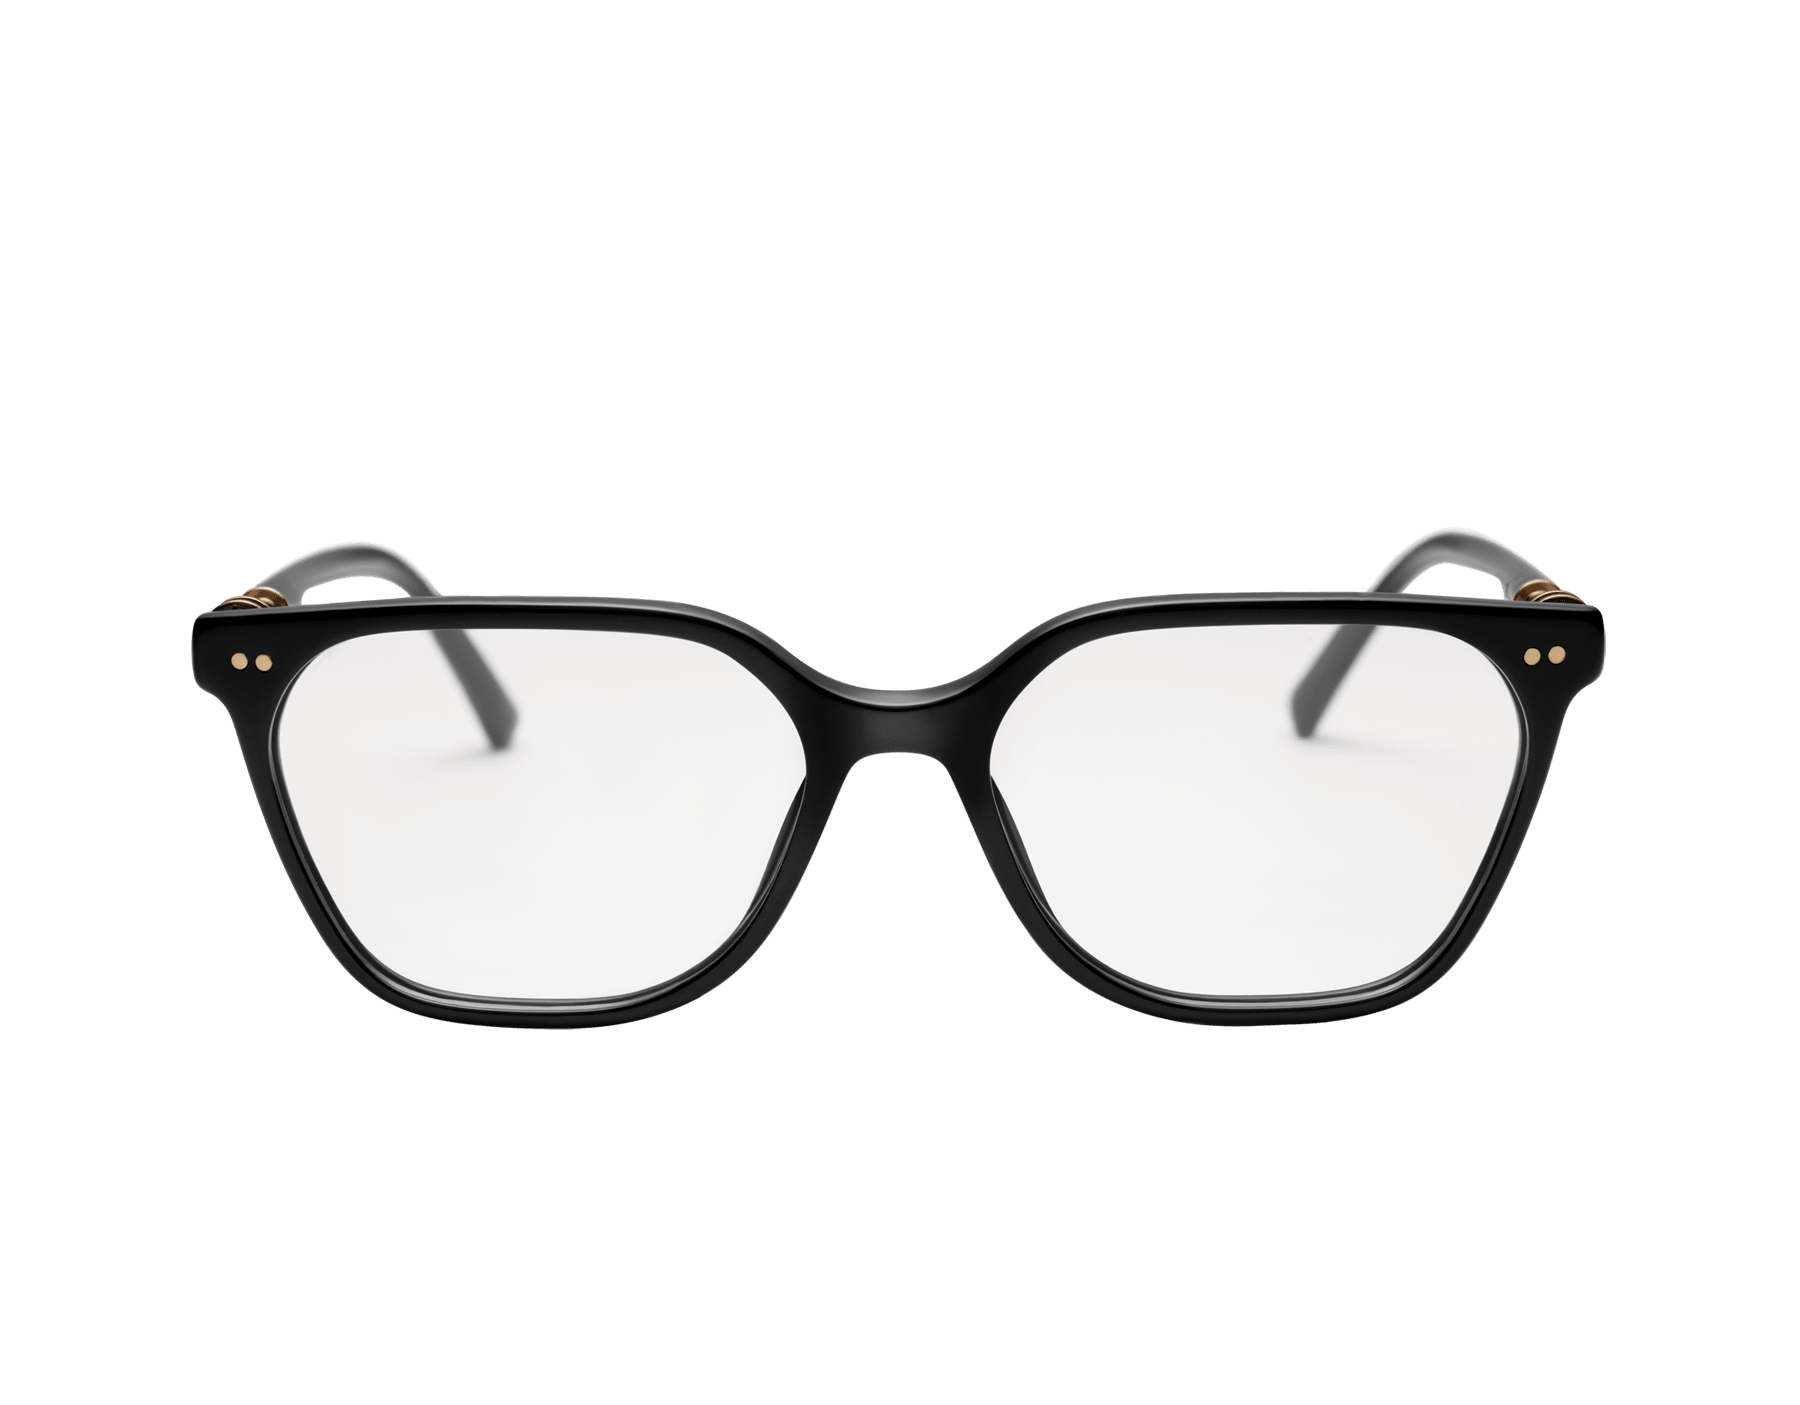 Bvlgari B.zero1 rectangular acetate glasses. 903874 image 2